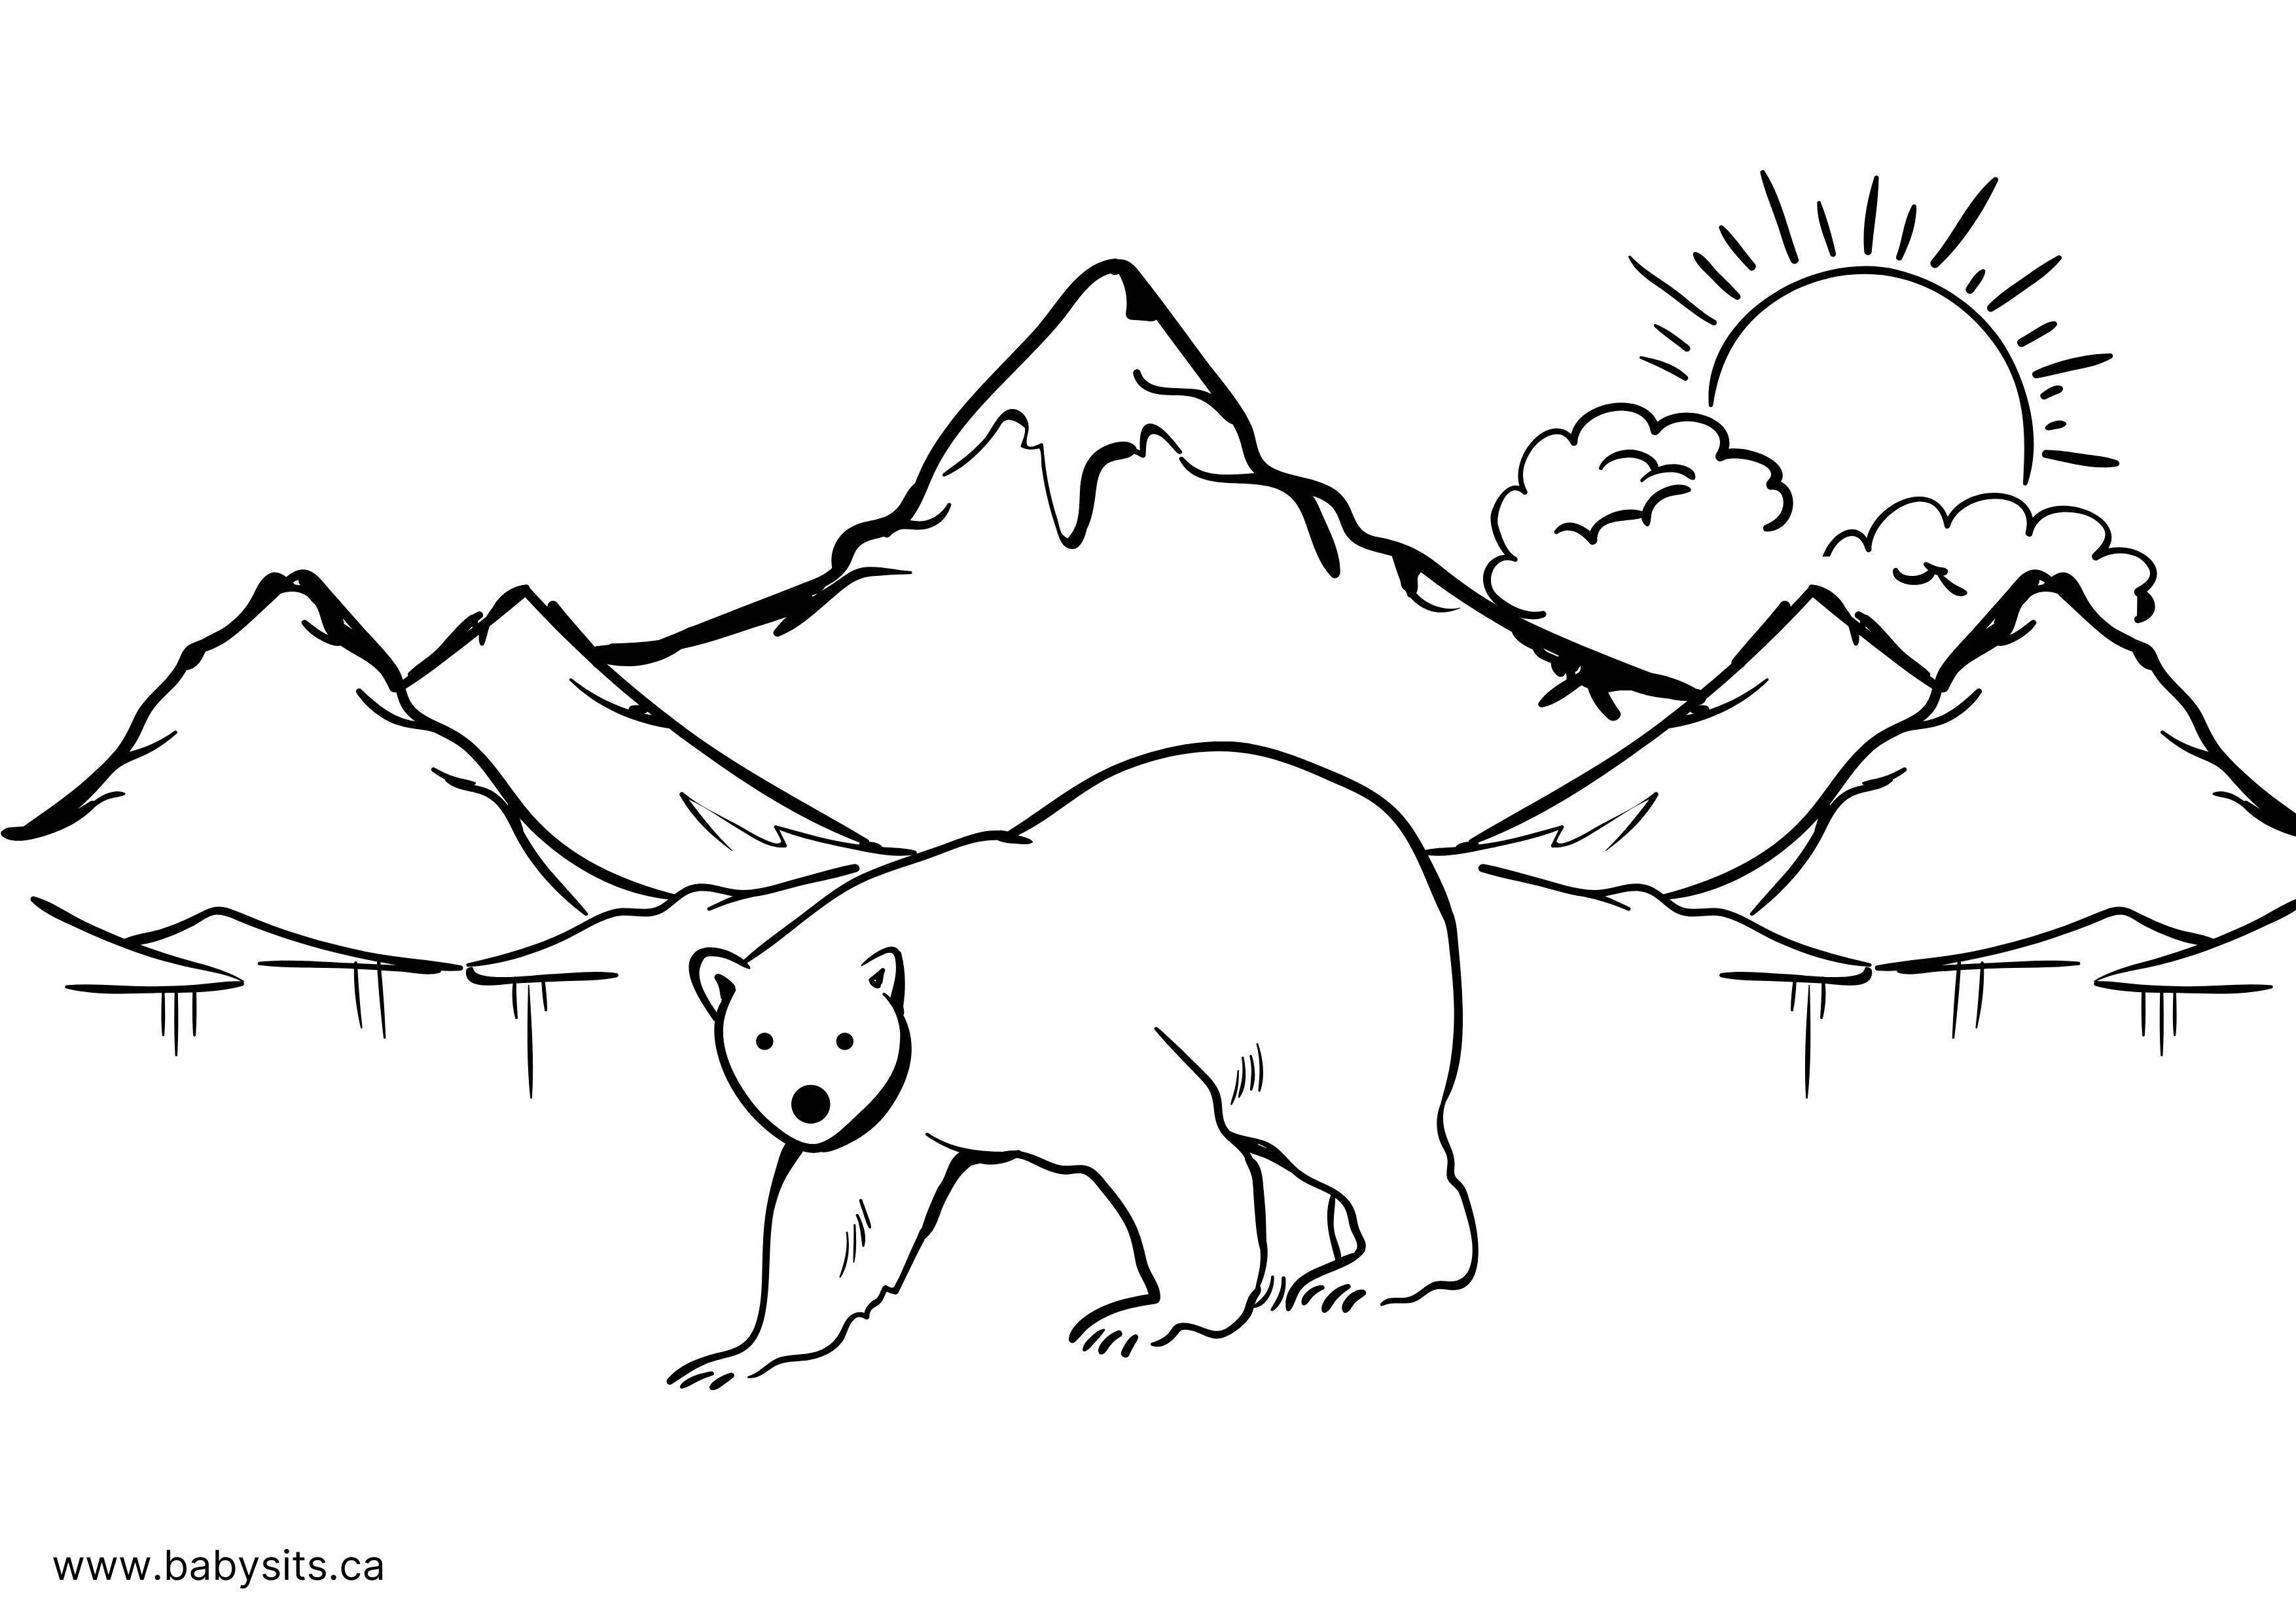 Beaver colouring page